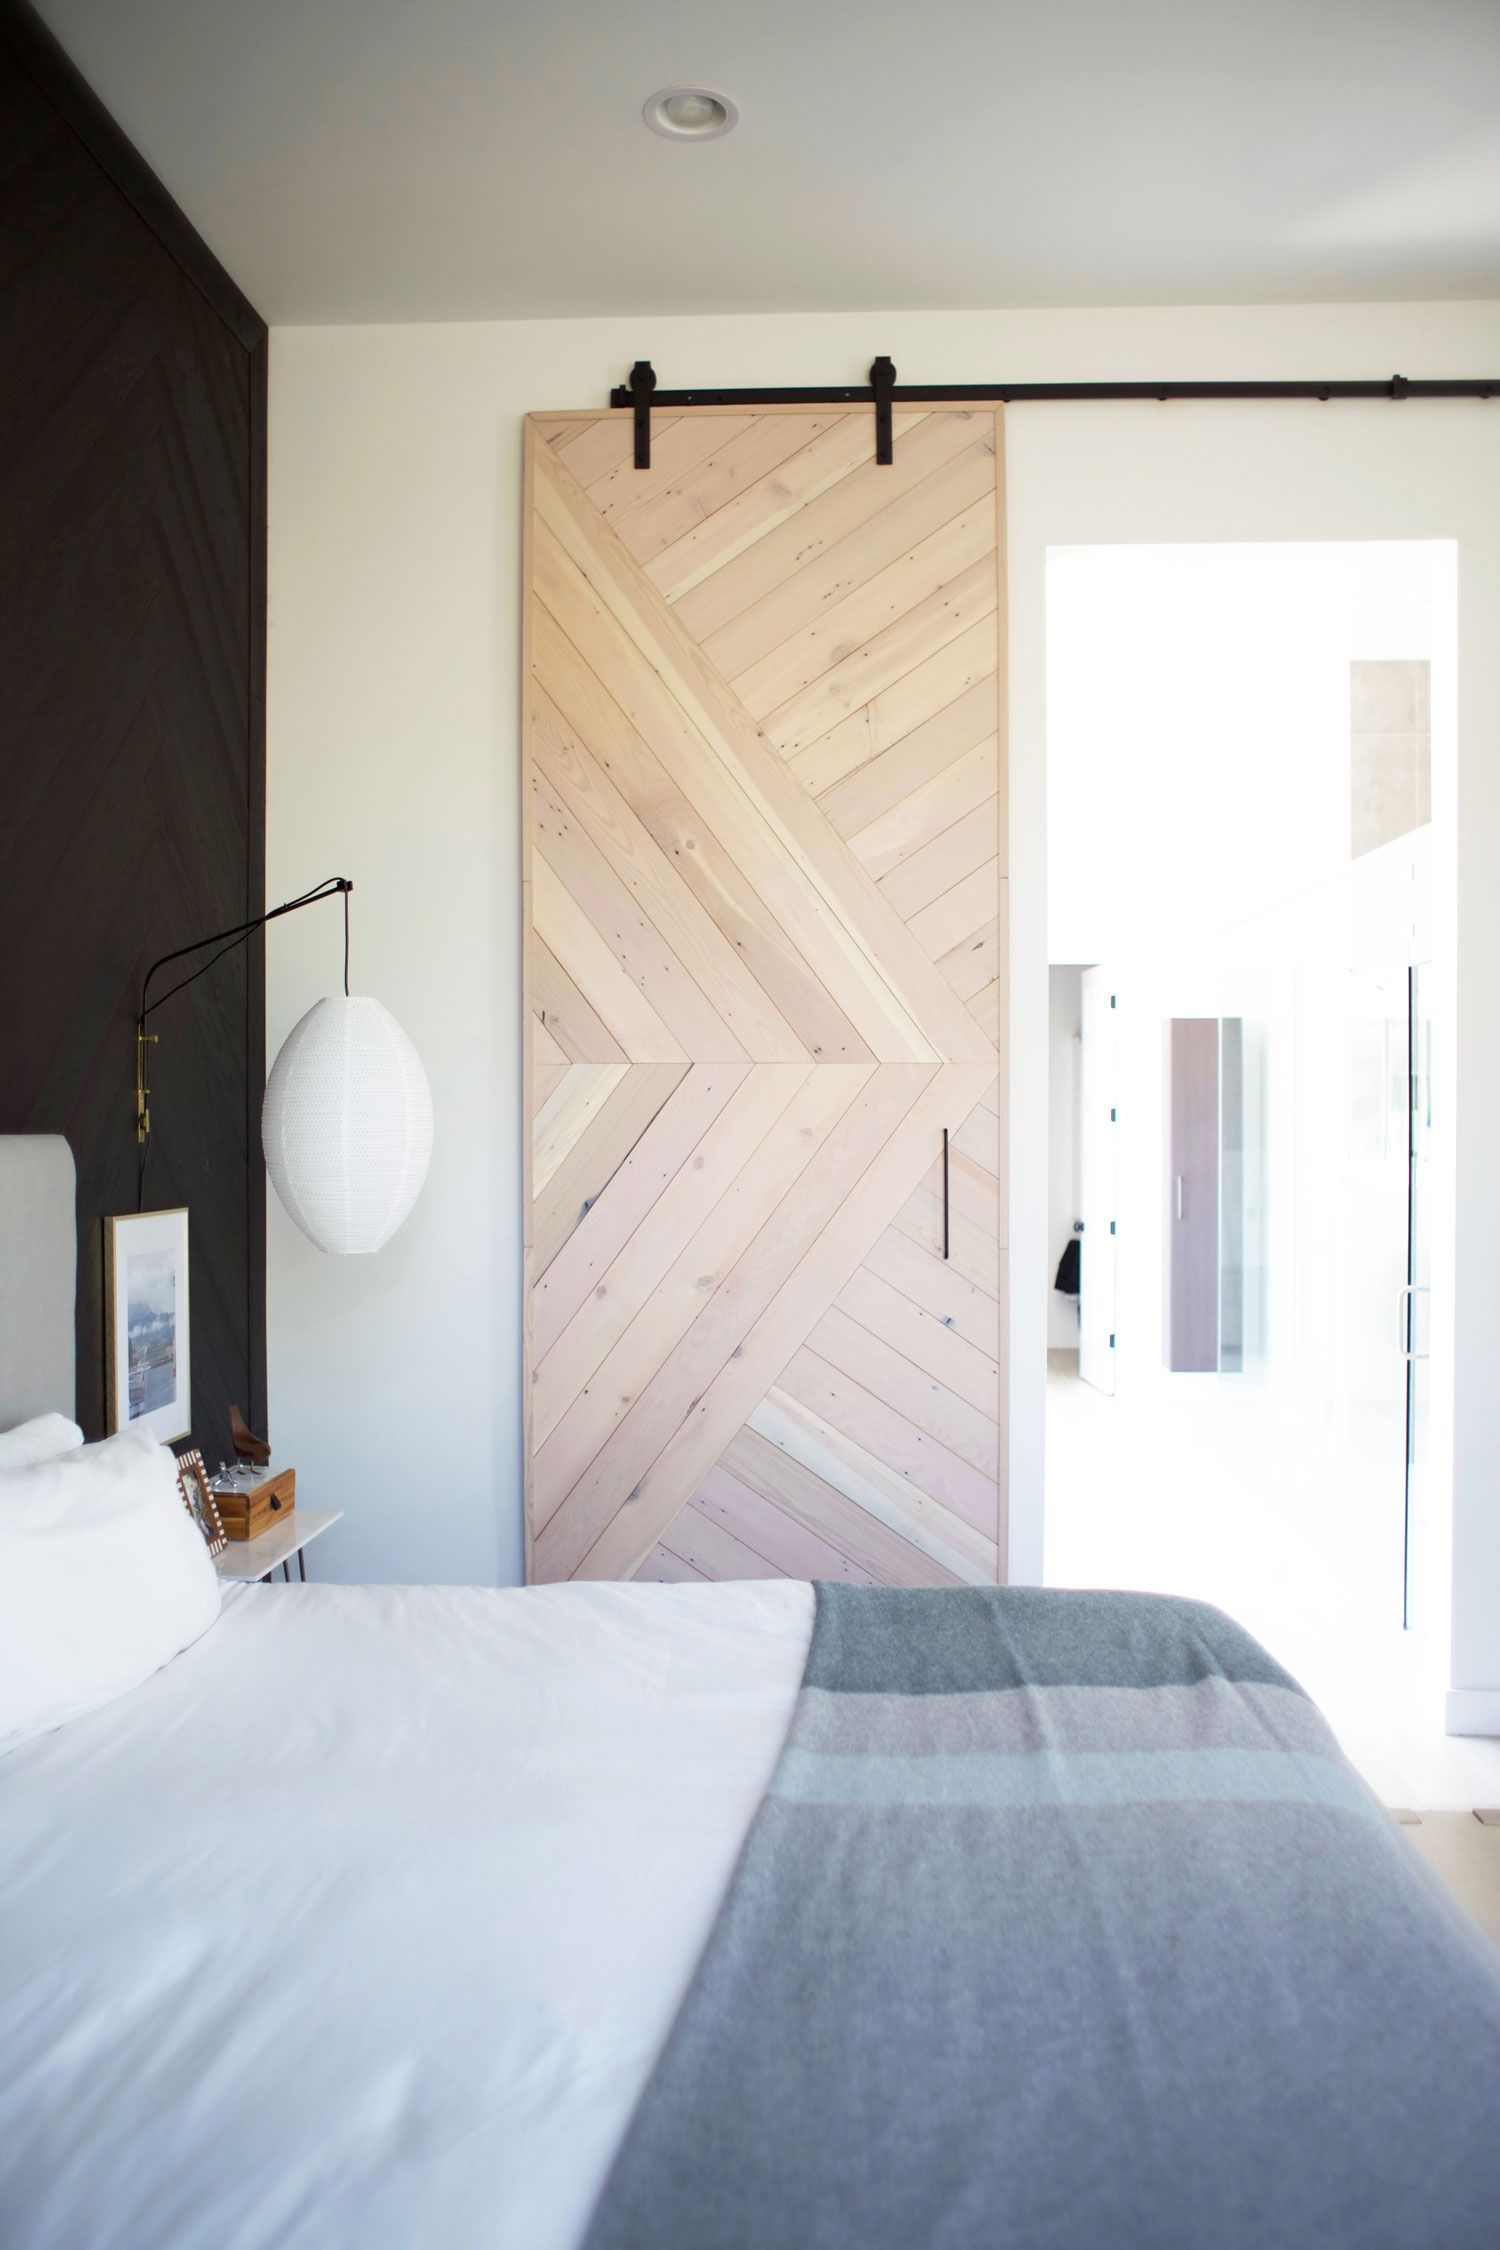 sep 5 diy this barn door with stikwood master bedroom ideas barn rh pinterest com